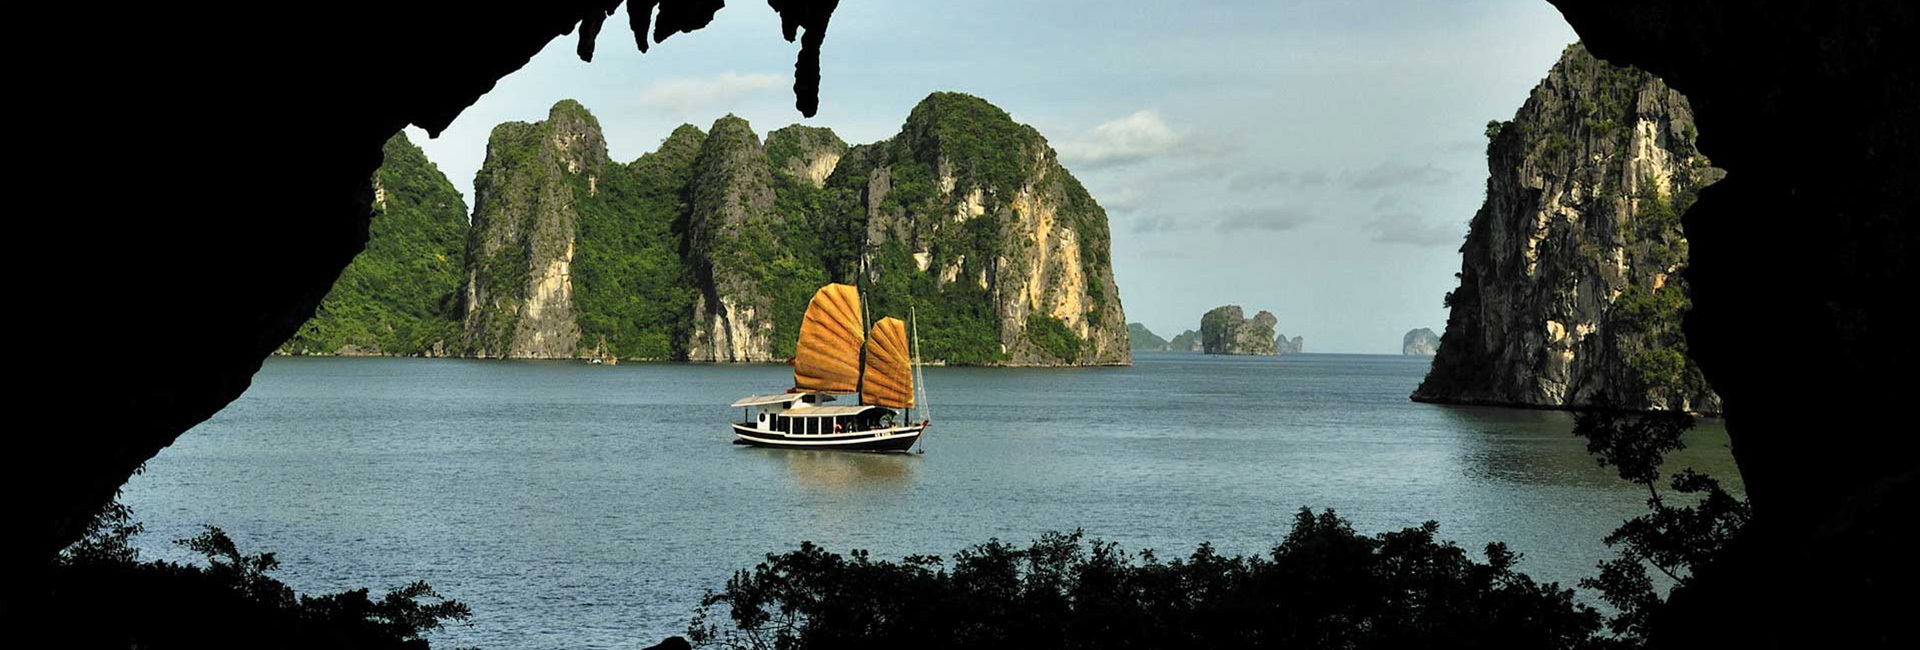 5 most spectacular Halong bay caves to explore